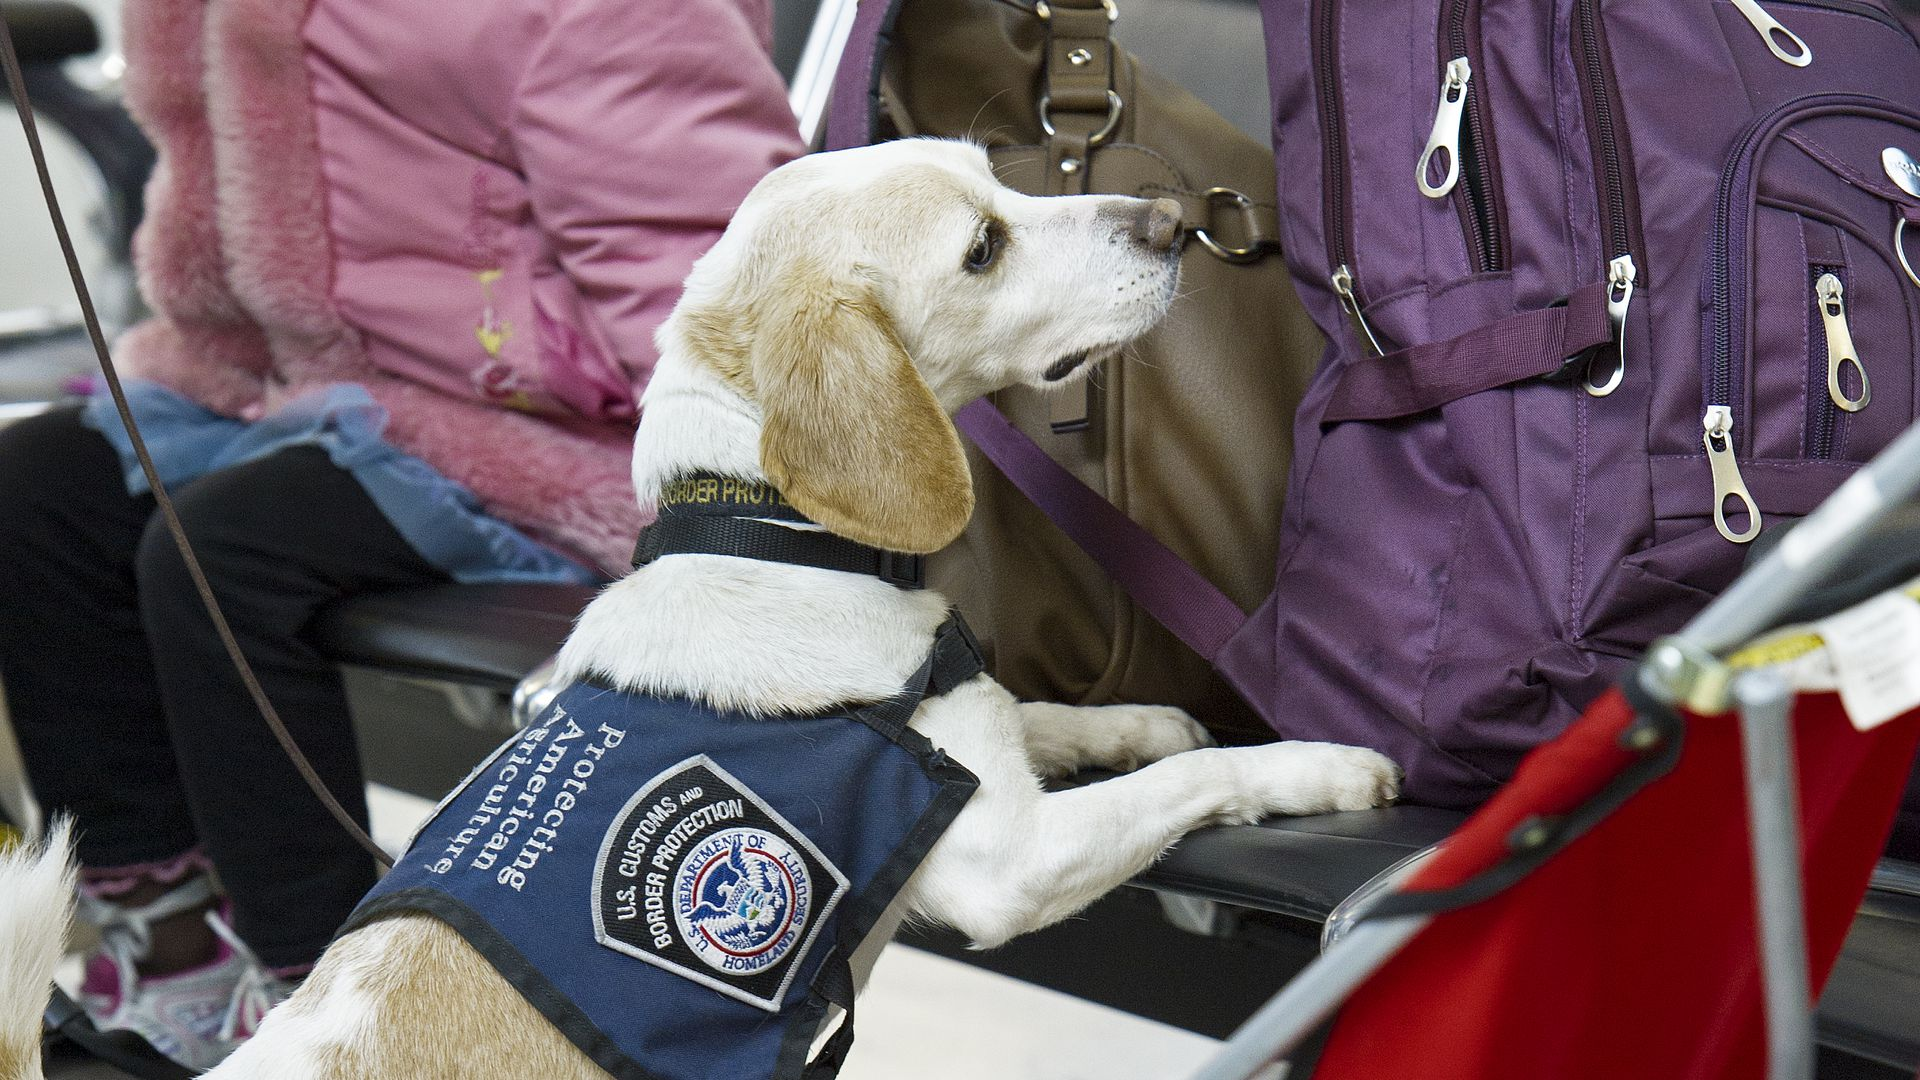 A airport security beagle sniffing luggage.